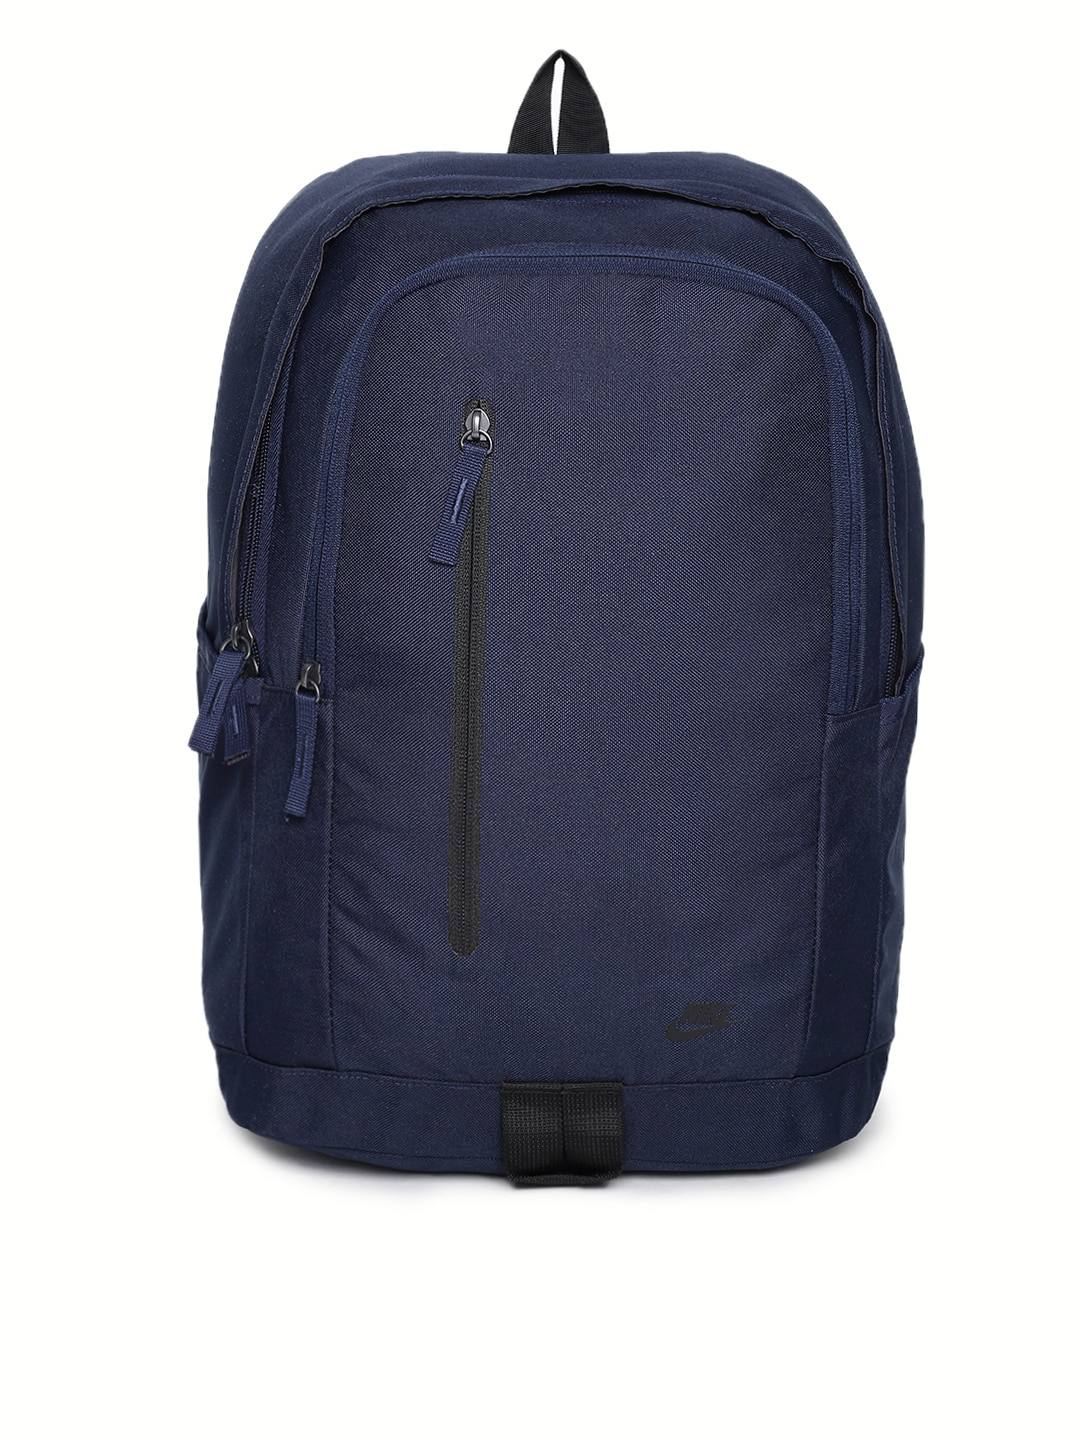 College Bags - Buy College Bags online in India 787c483b86cc5